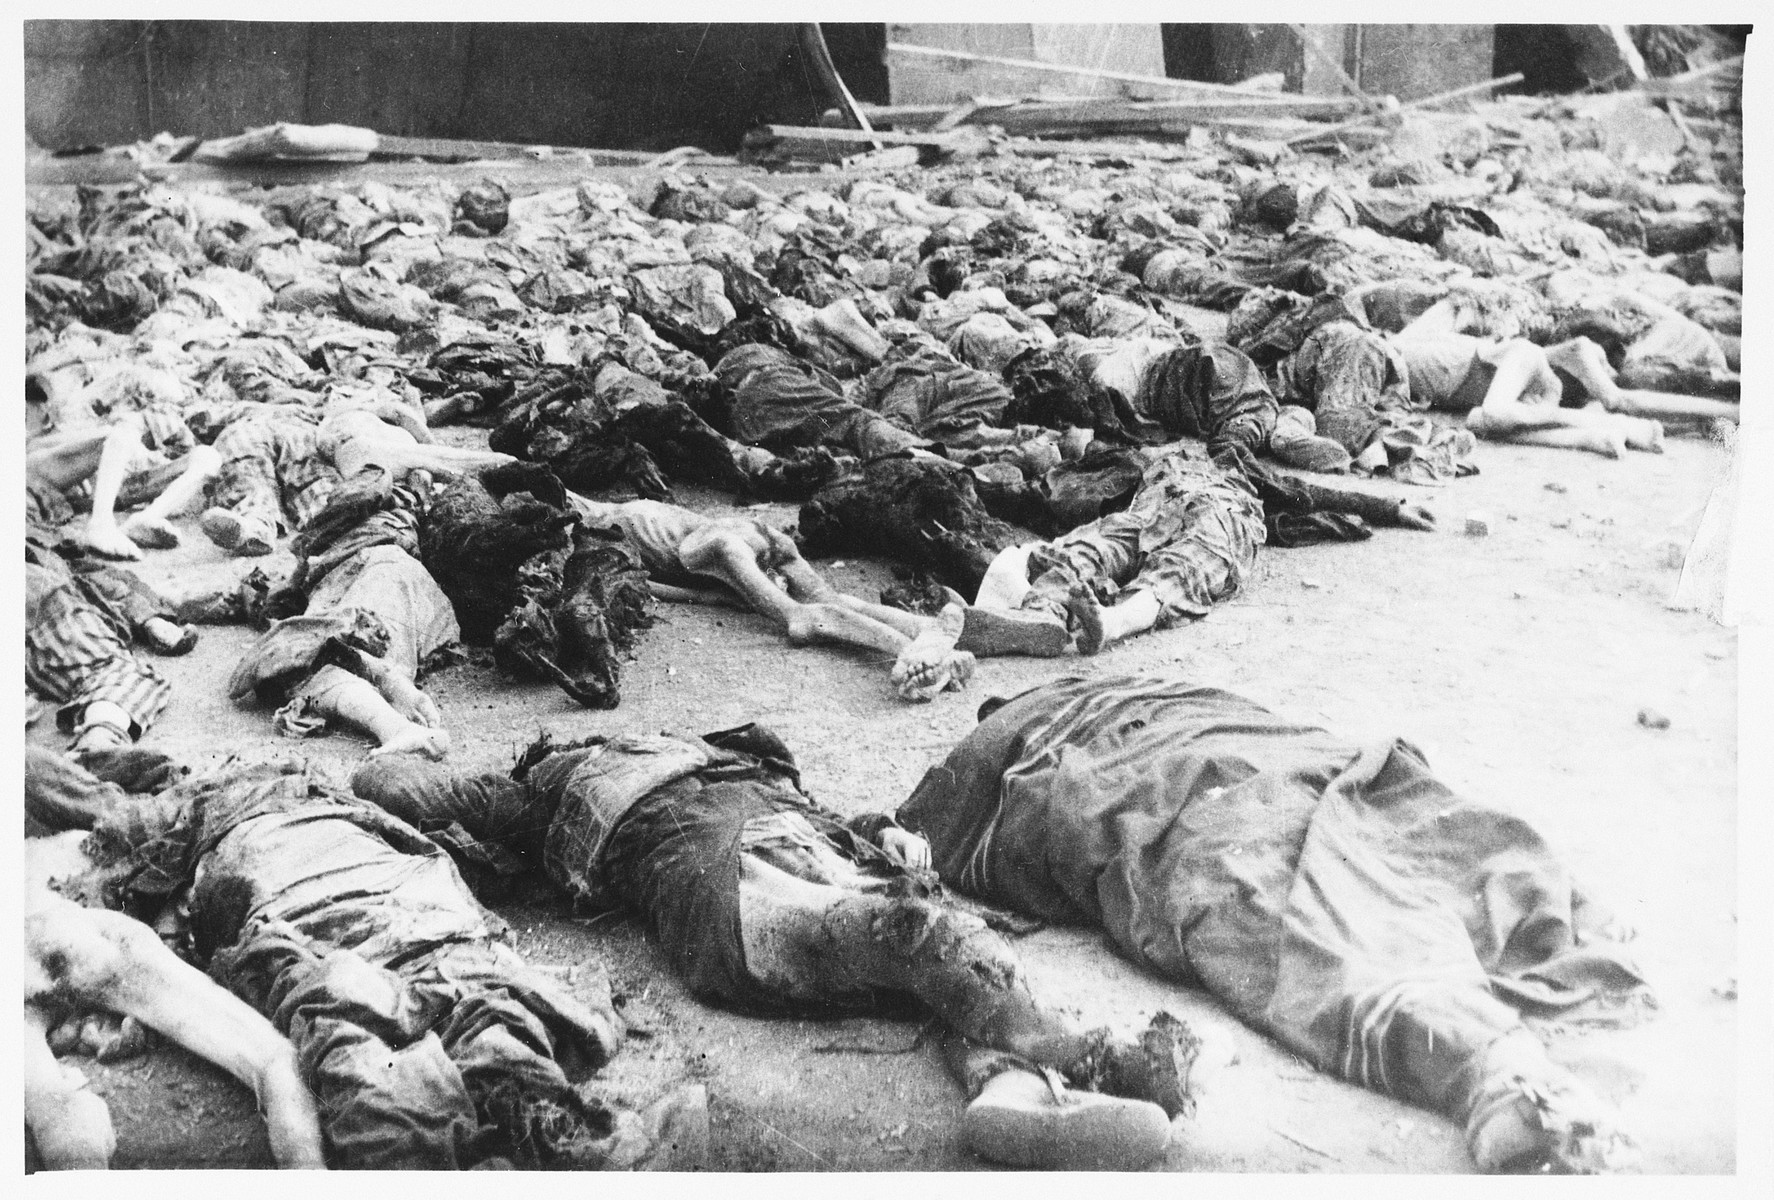 View of corpses lying on the ground of the Nordhausen concentration camp following liberation.